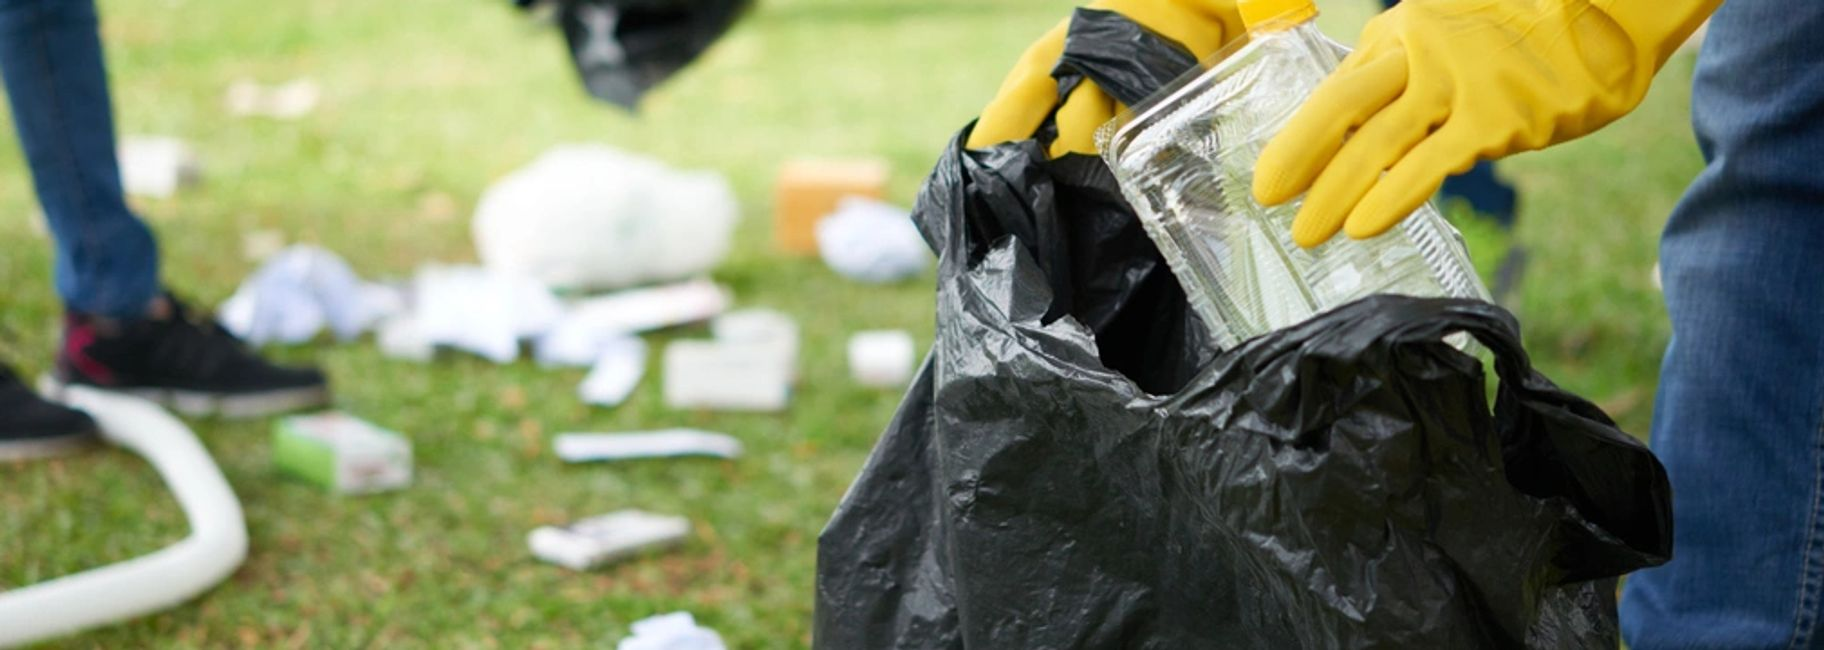 Garbage removal pittsburgh, garbage pick up pittsburgh, debris removal pittsburgh